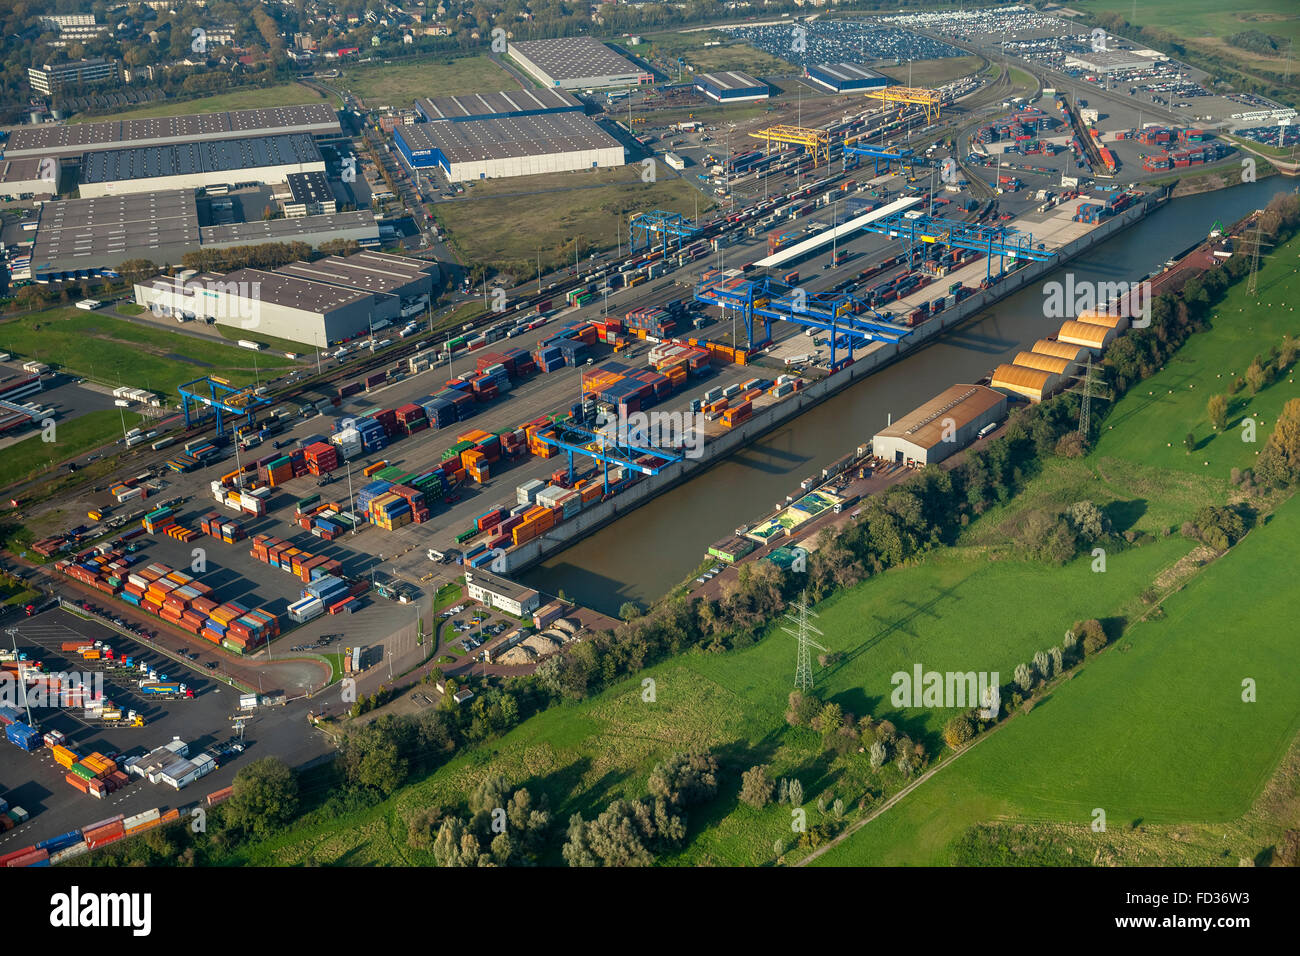 Aerial view, container, container loading, gantry crane, logistics, cargo handling, the port of Duisburg, Logport - Stock Image